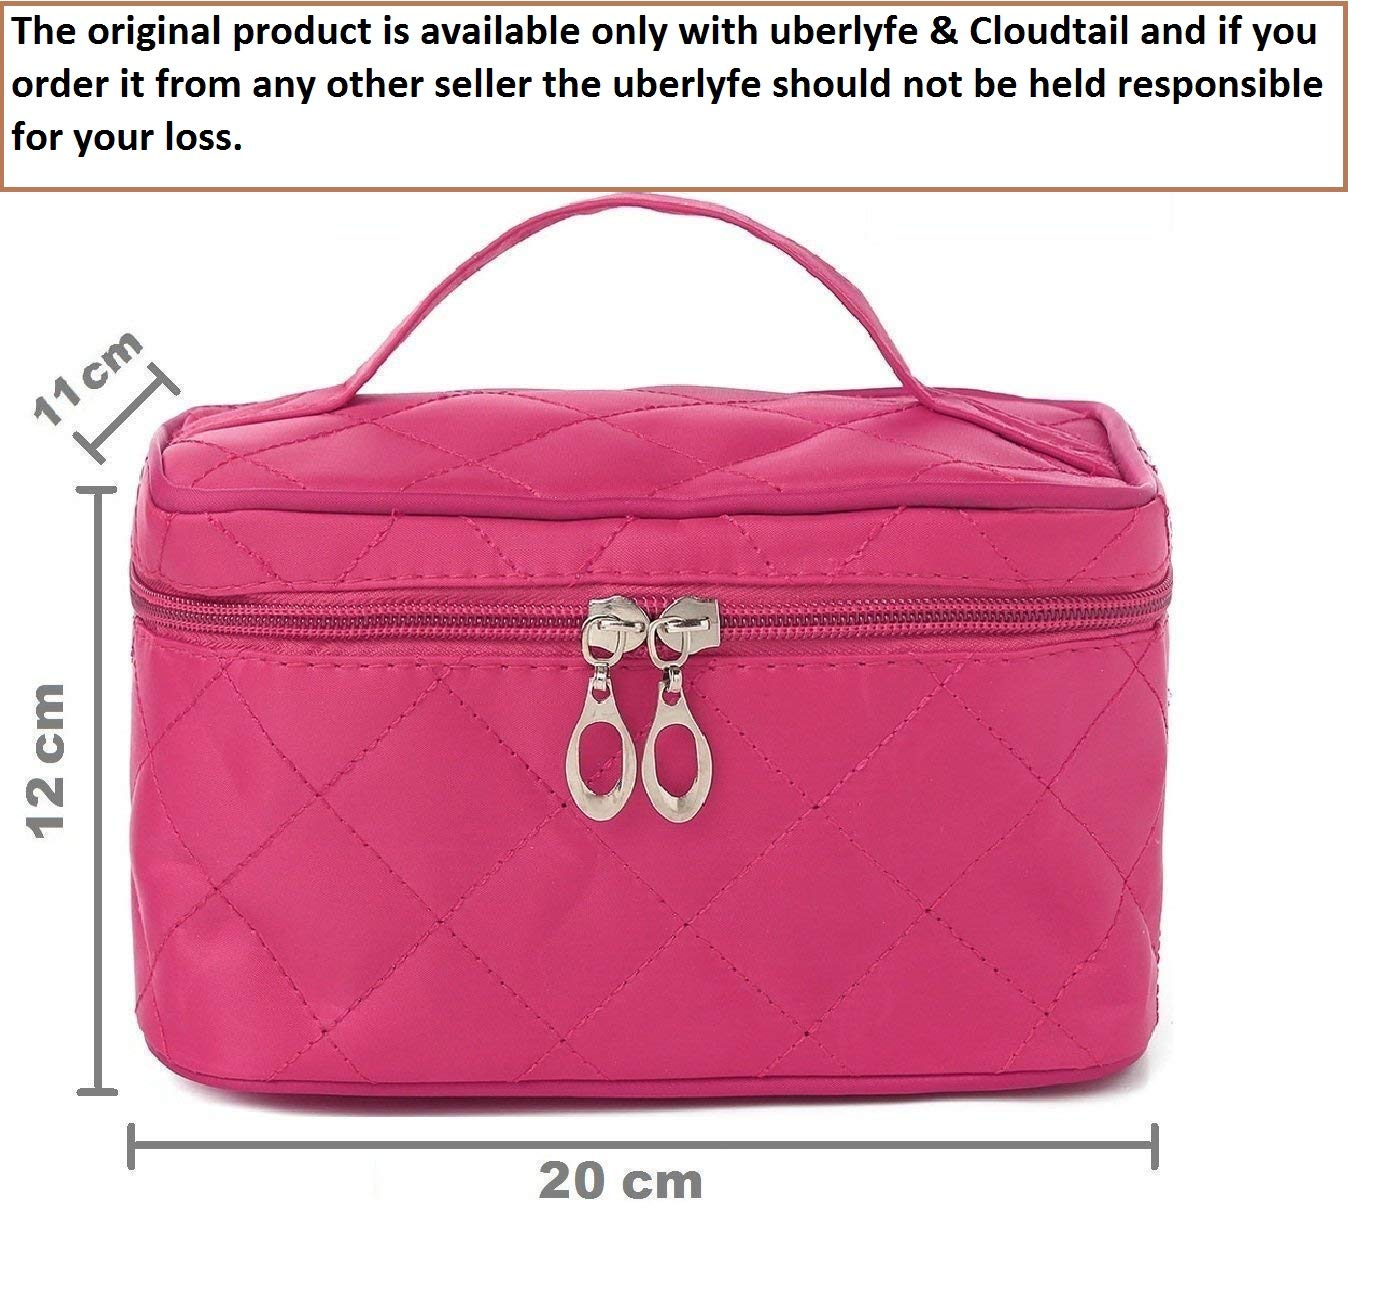 Buy Uberlyfe Cosmetic Bag Travel Organizer With Cosmetic Pouch, Pink Online  at Low Prices in India - Amazon.in 0ce6907b1a